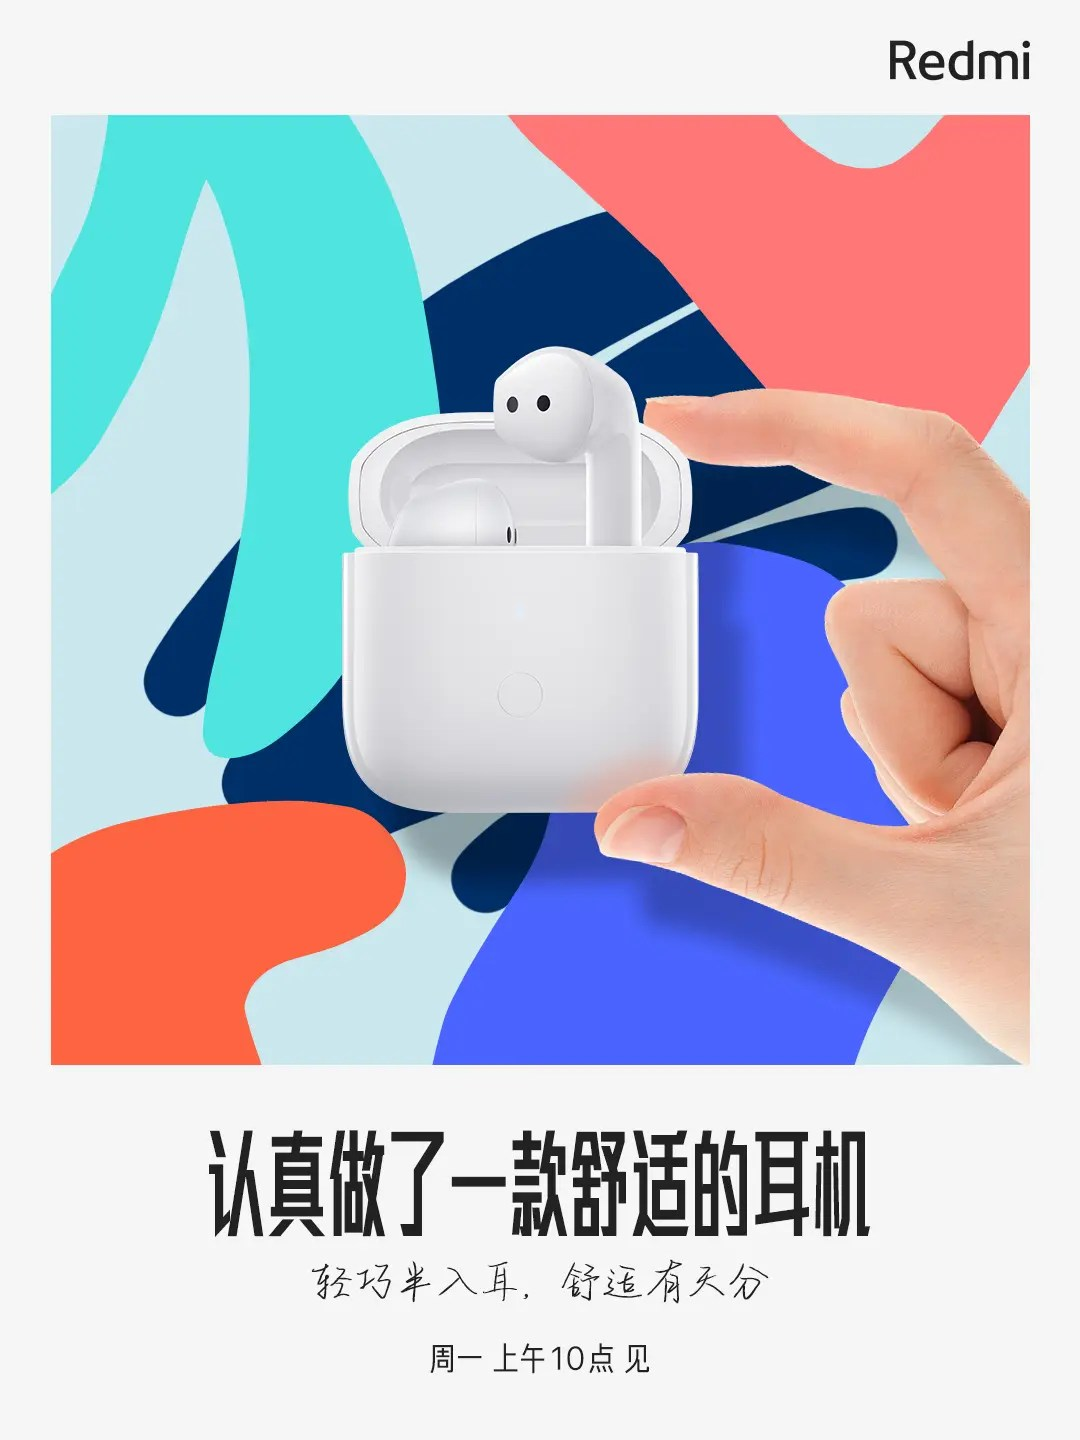 Semi-in-ear Type Redmi Buds 3 Features Qualcomm QCC3040